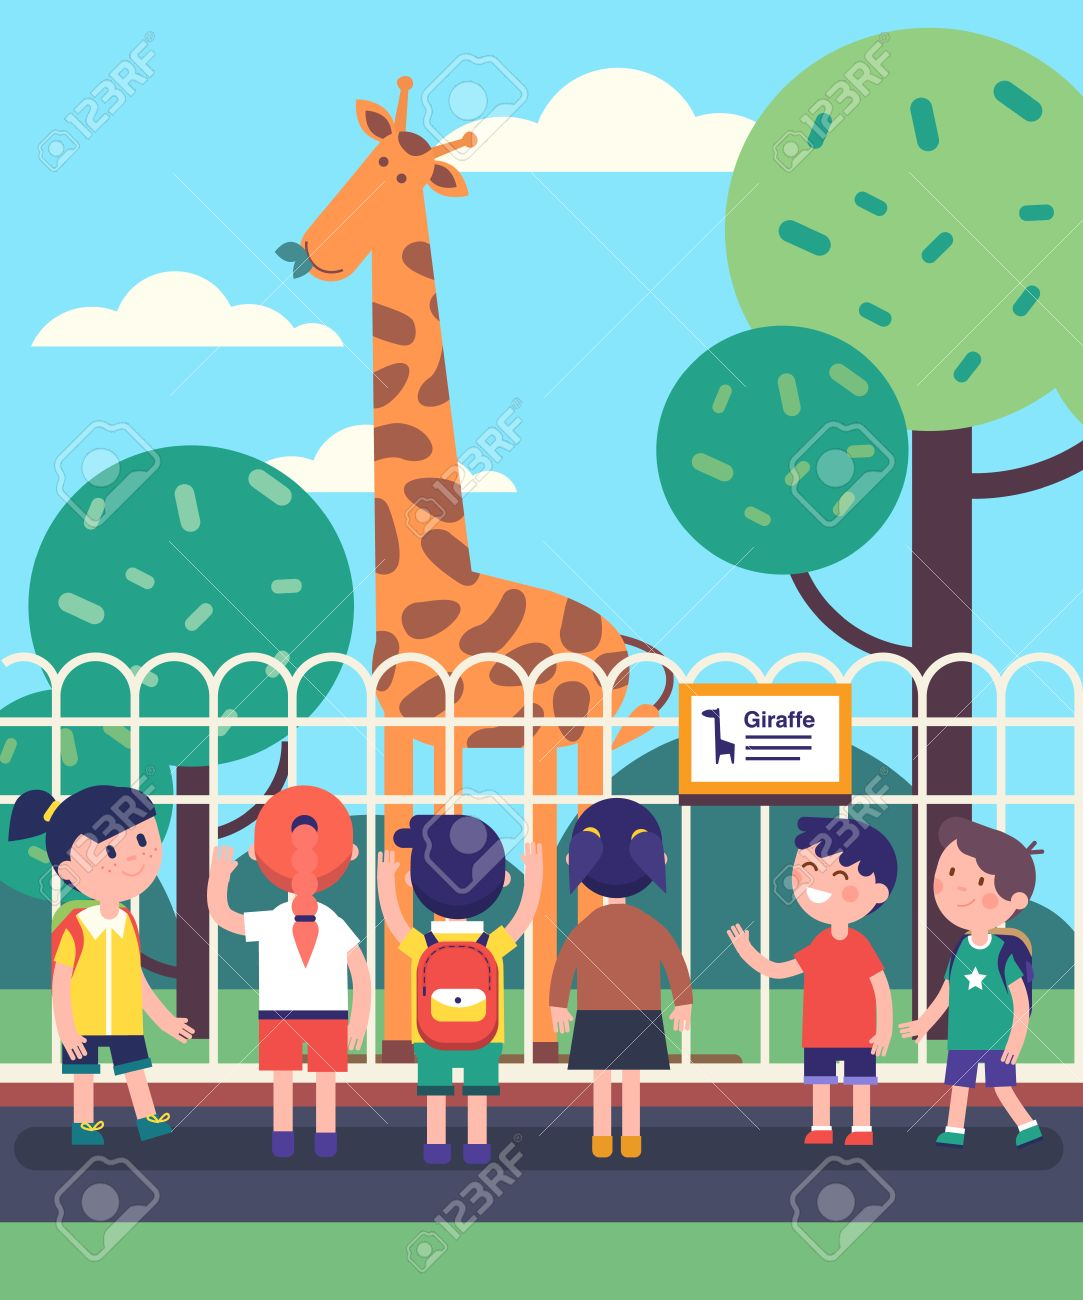 hight resolution of group of kids watching giraffe at a zoo excursion school or kindergarten students on filed